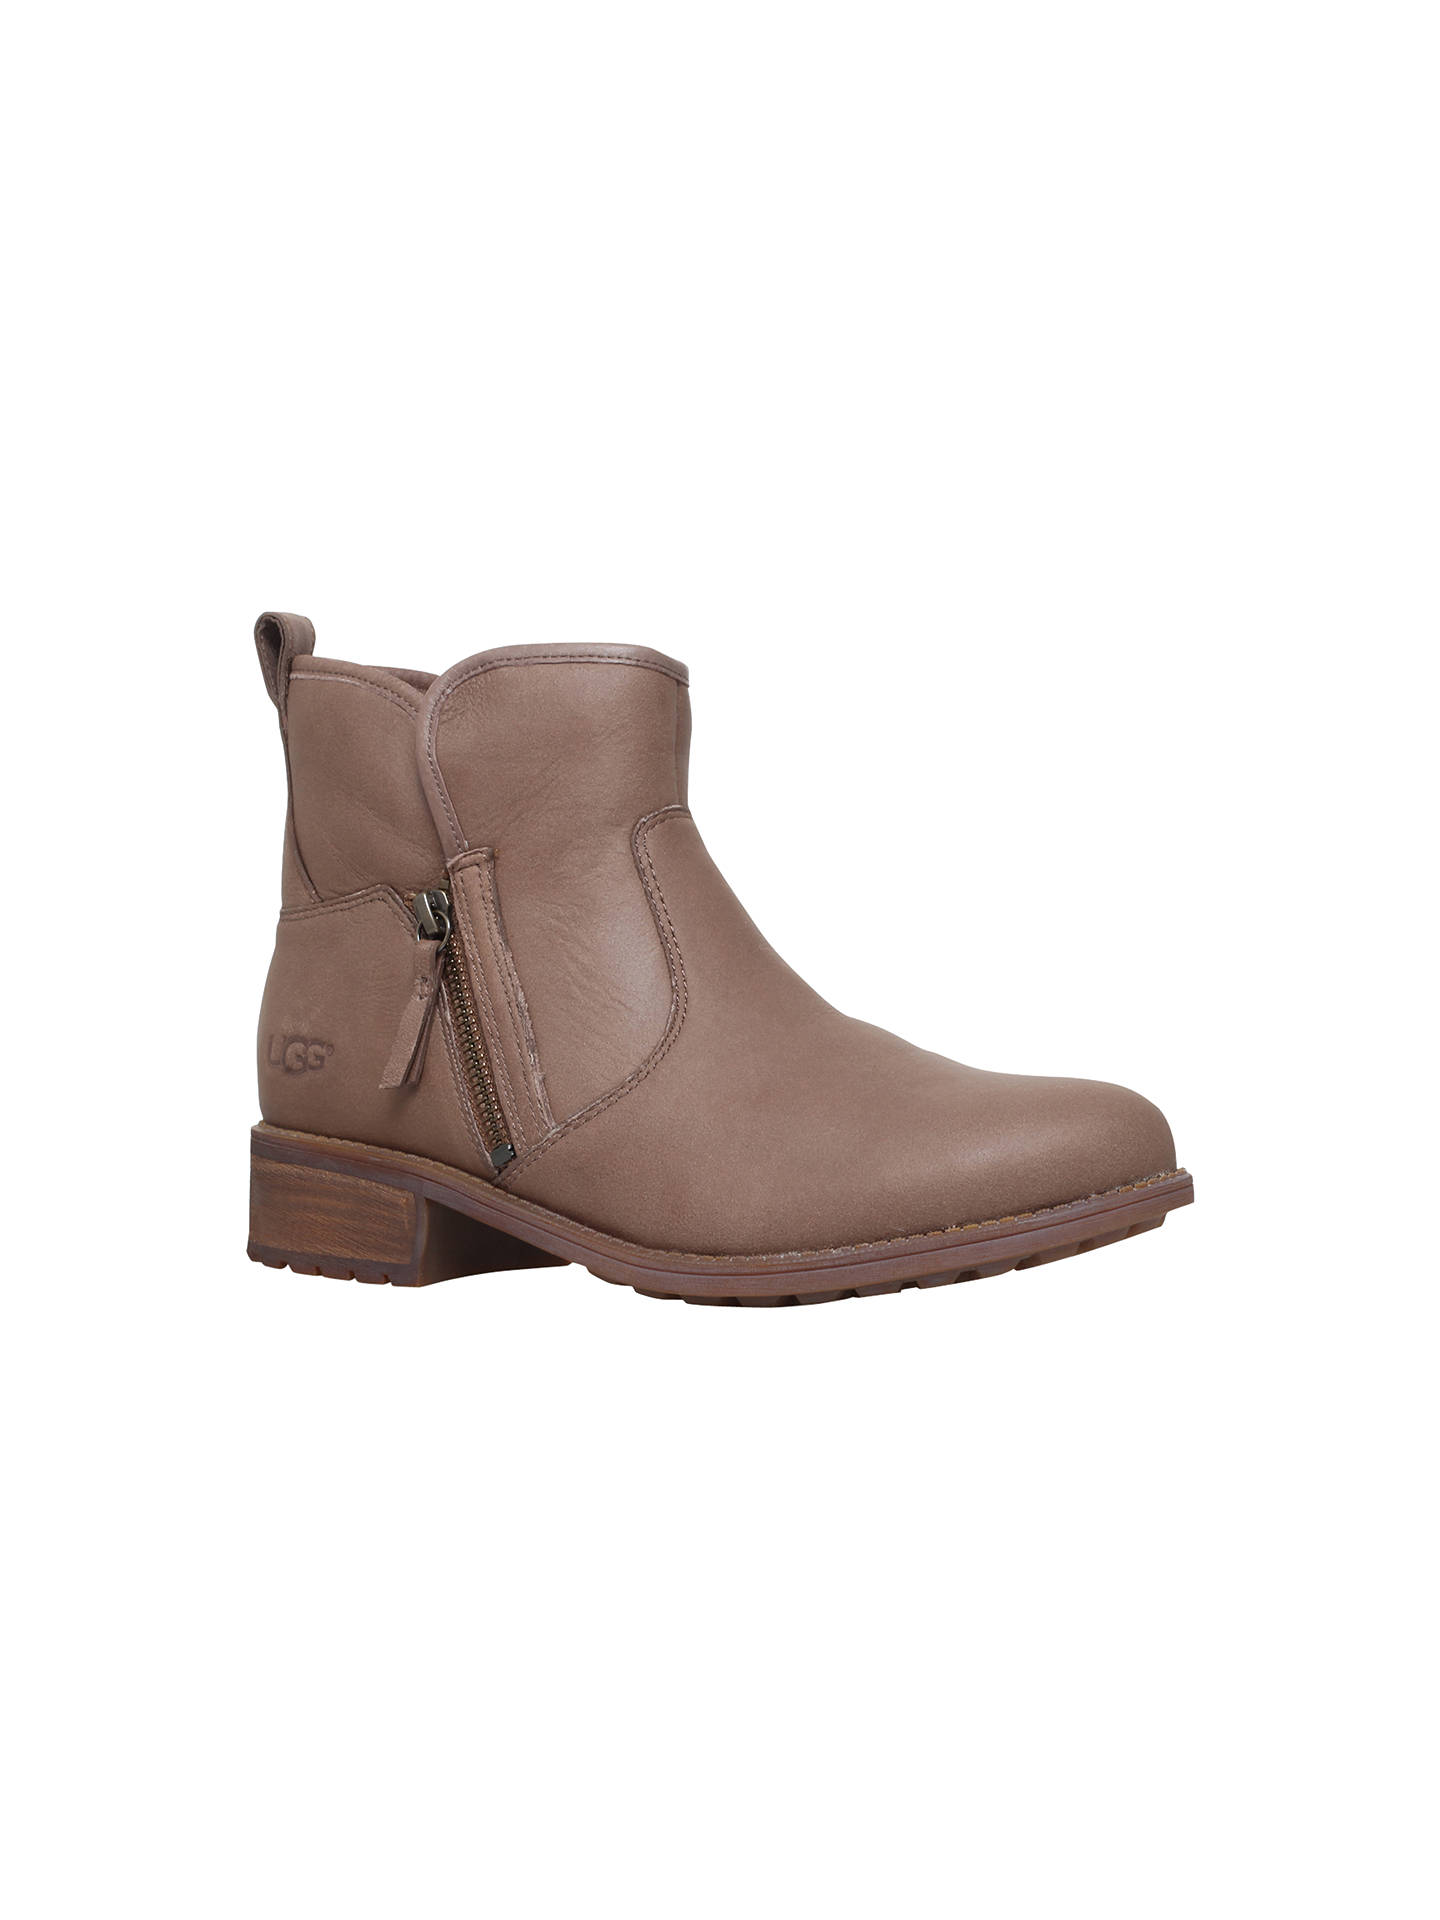 d4a12206b6d UGG Lavelle Side Zip Ankle Boots at John Lewis & Partners